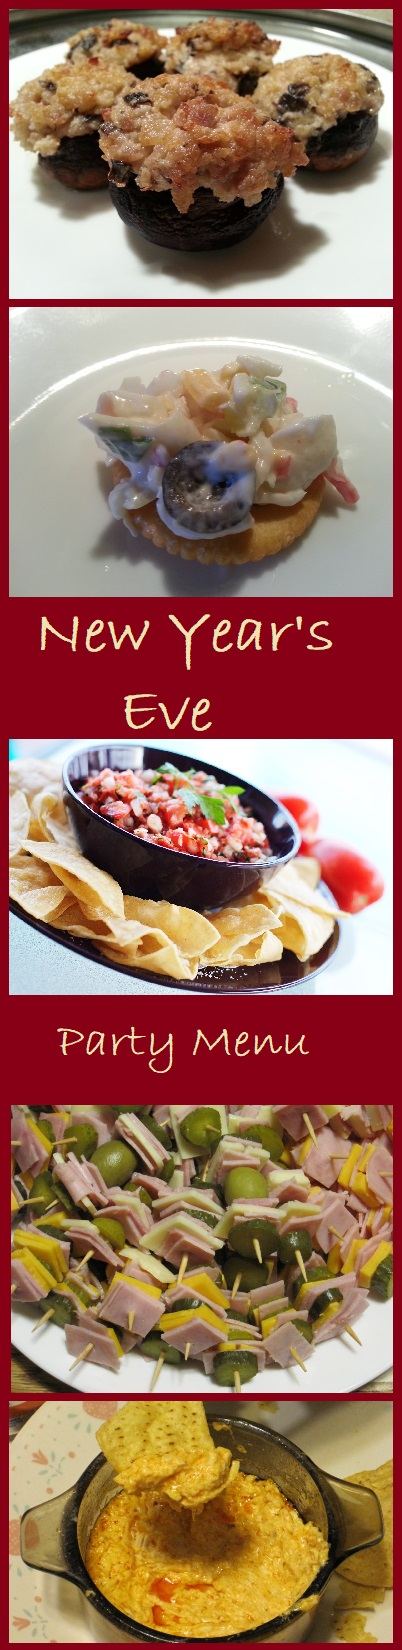 Our Menu plan for a New Year's Eve Party with links to all of the recipes.